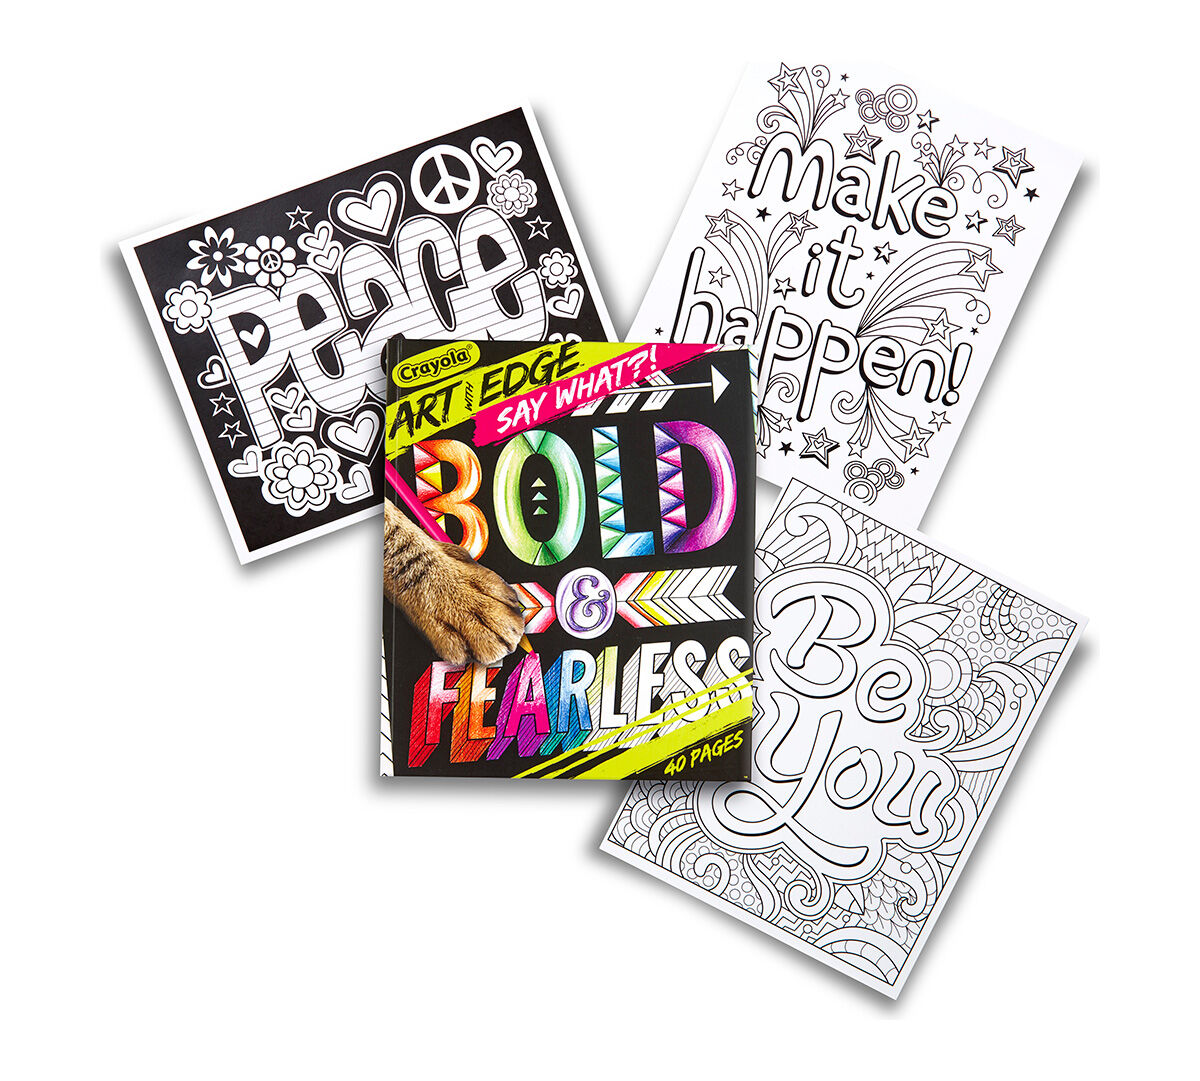 <p>Crayola Art With Edge is a line of stunning designs that will keep your creativity on the edge! The SAY WHAT?! collection offers colorful words and inspiring pearls of wisdom, ready for your decorative powers to make them even more impactful! 40 pages of word art on high-quality paper, perfect for framing.</p>